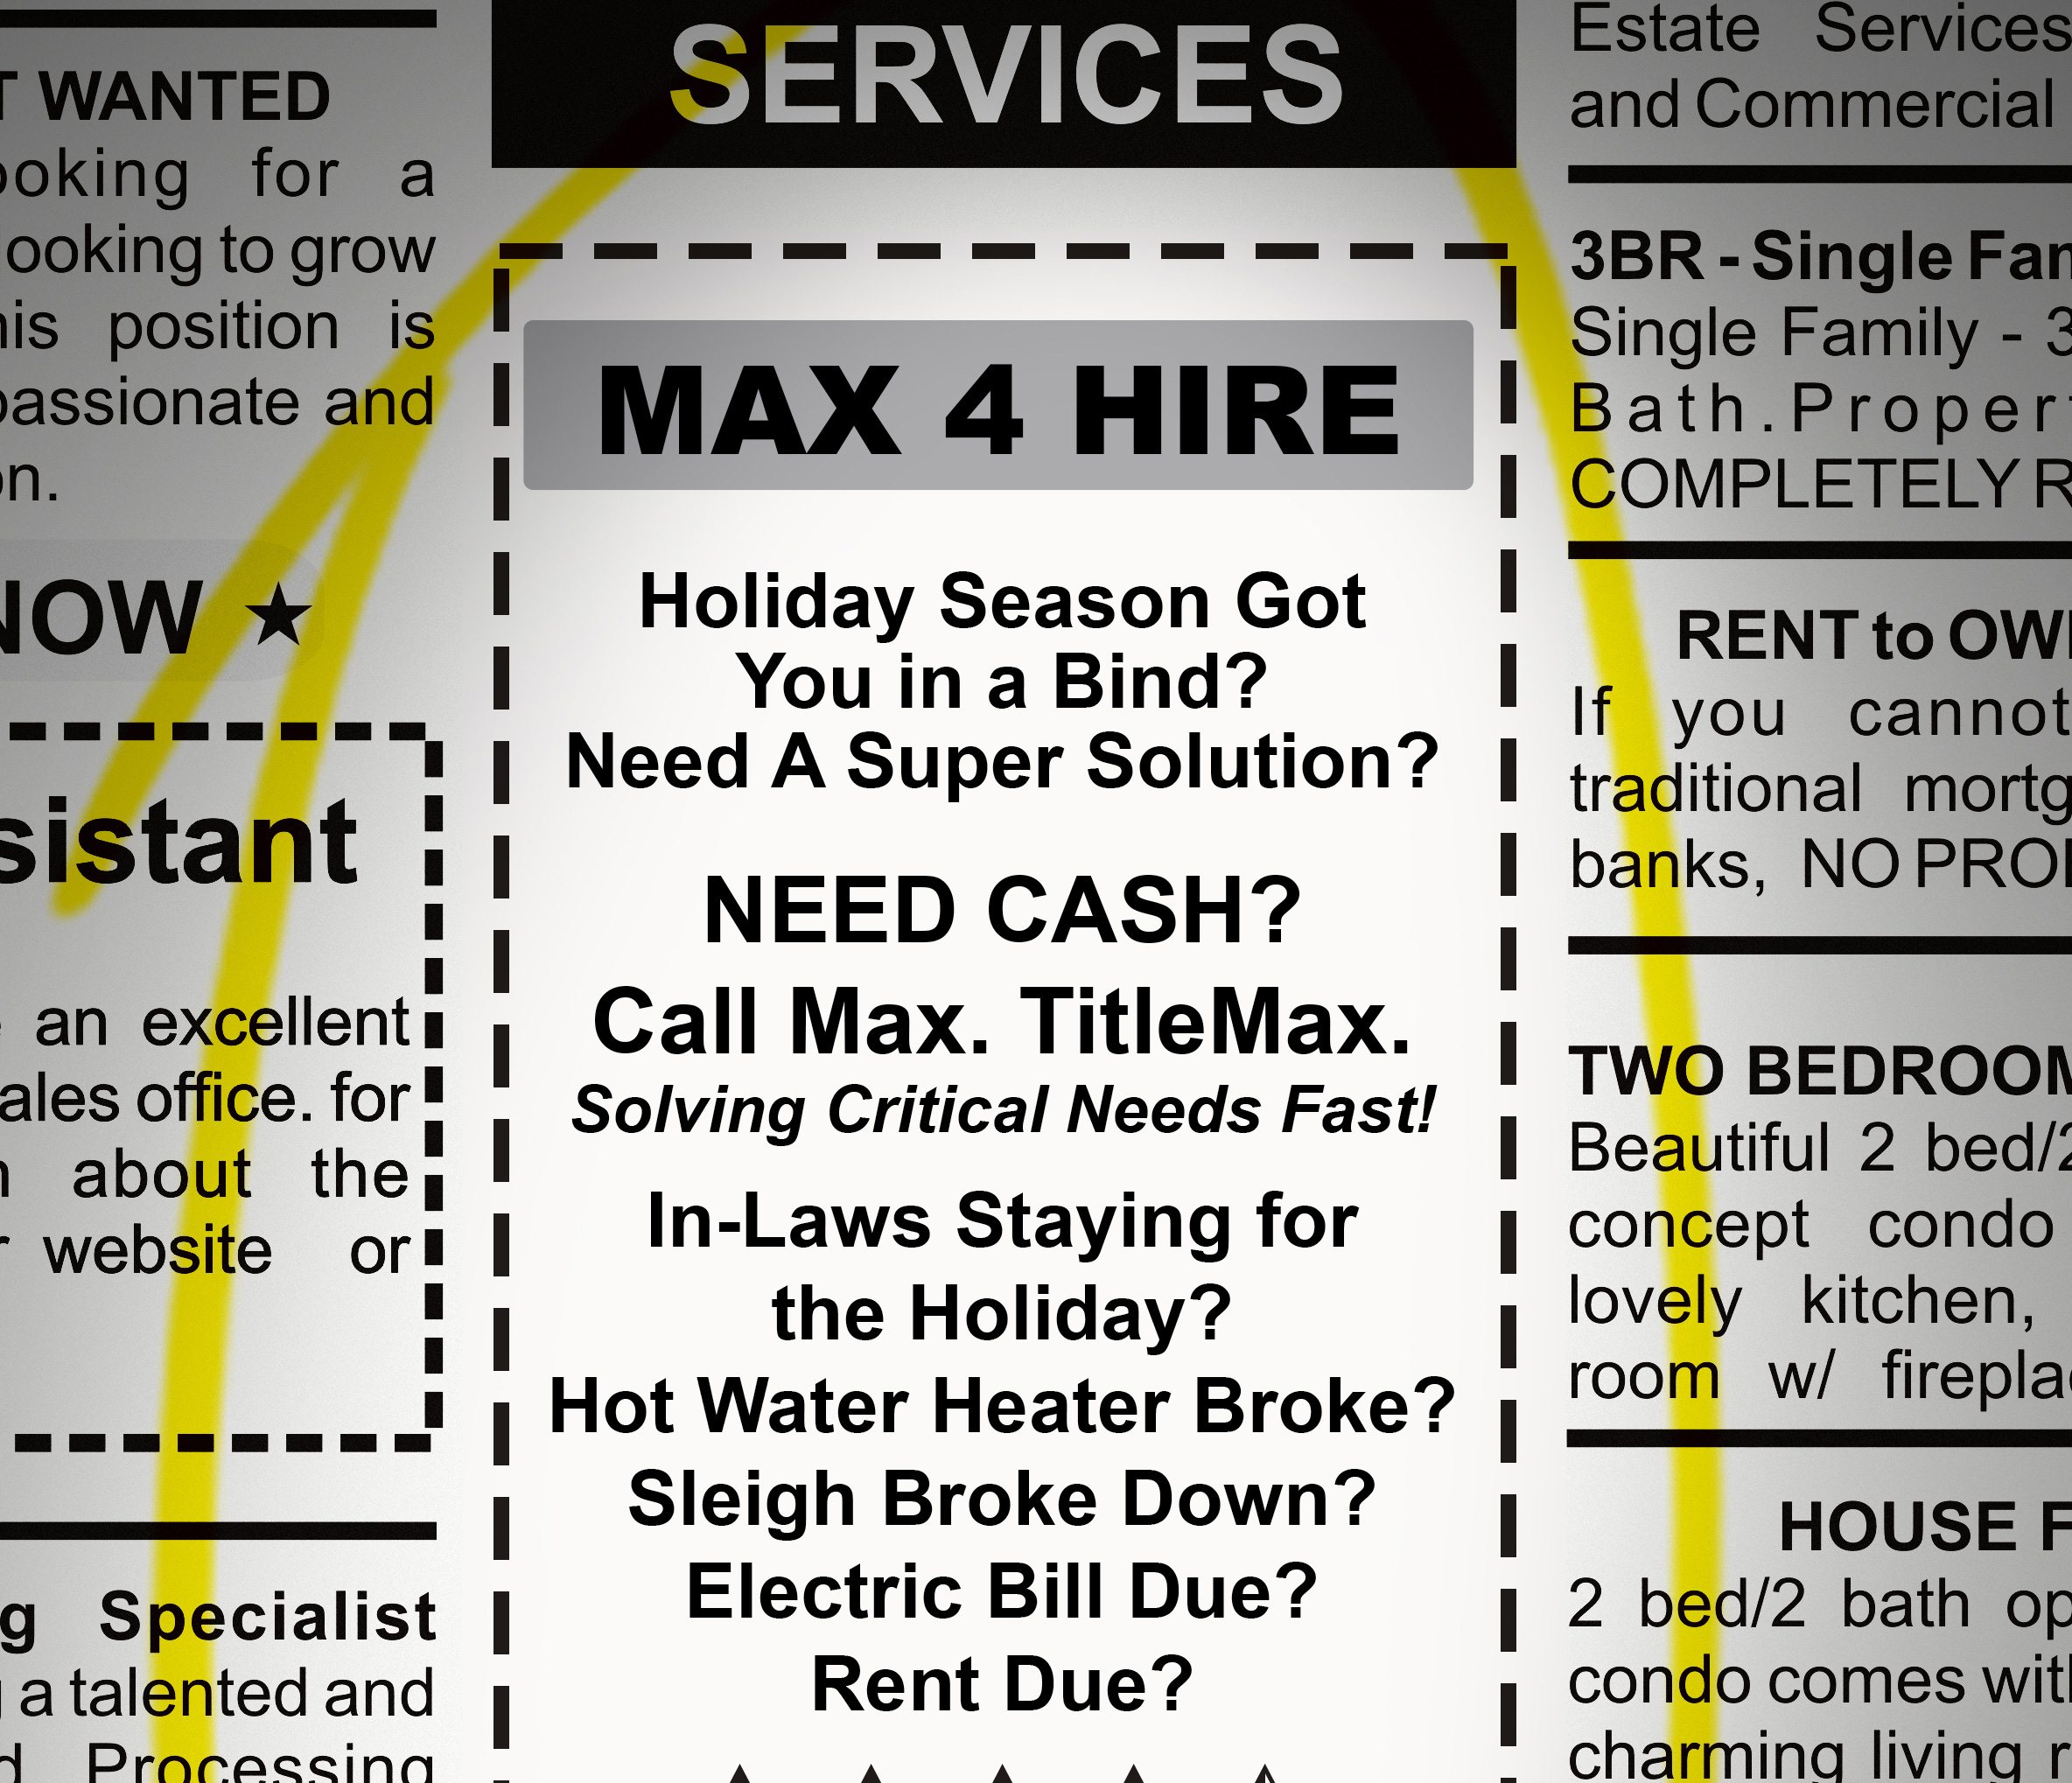 Max 4 Hire! Need a Super Solution?